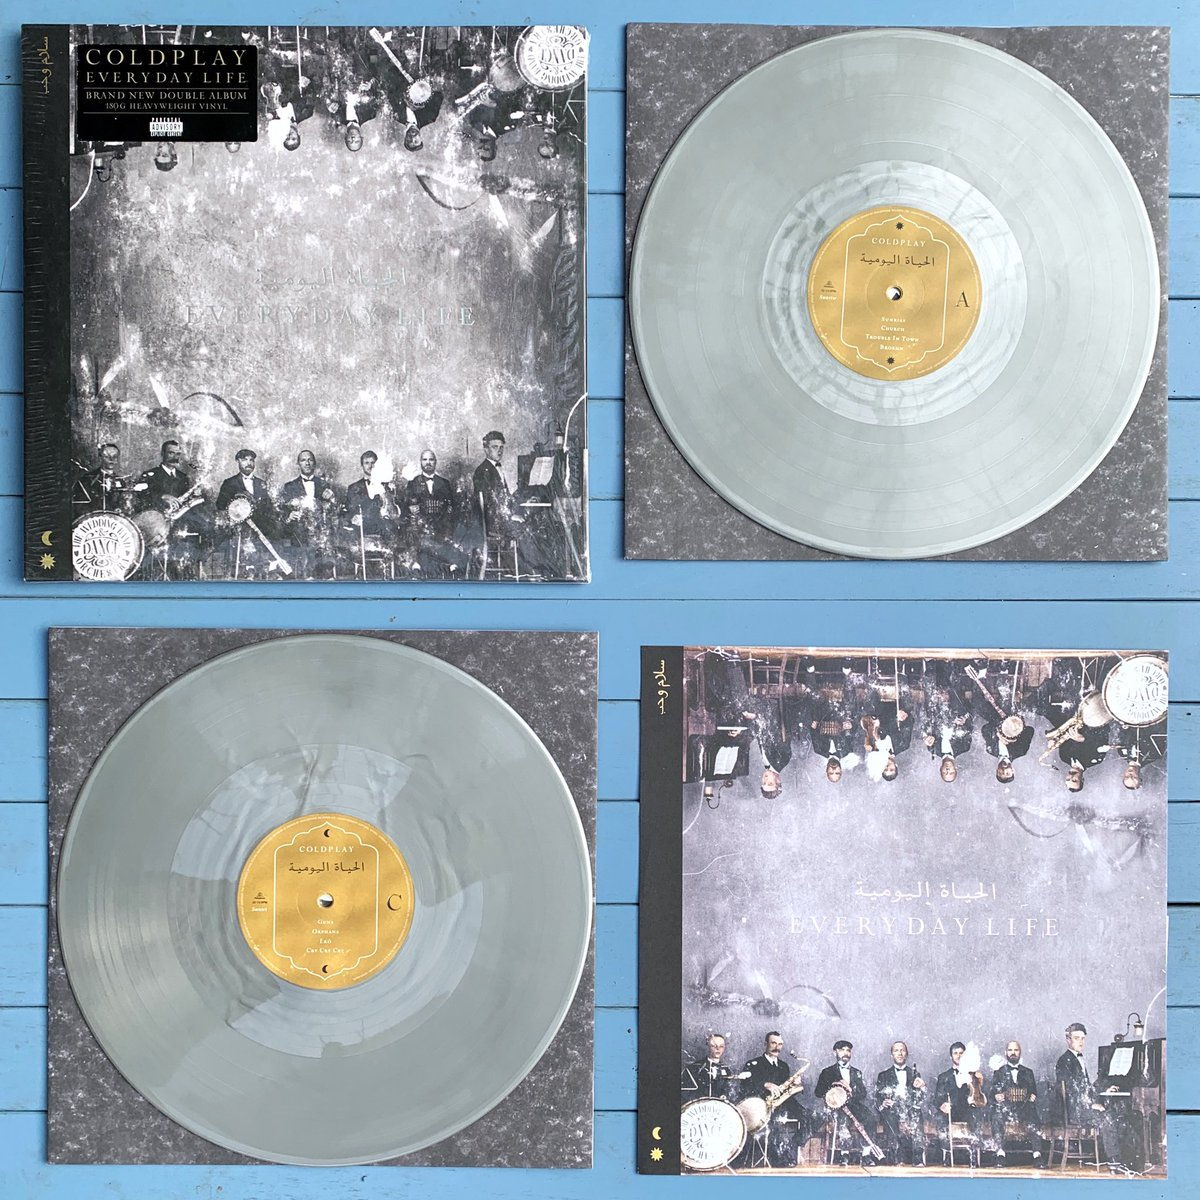 FIVE DAYS until #EverydayLife. Order the album on silver double vinyl, exclusively from the Official Coldplay Store. A -> coldplay.lnk.to/EverydayLifeVI…